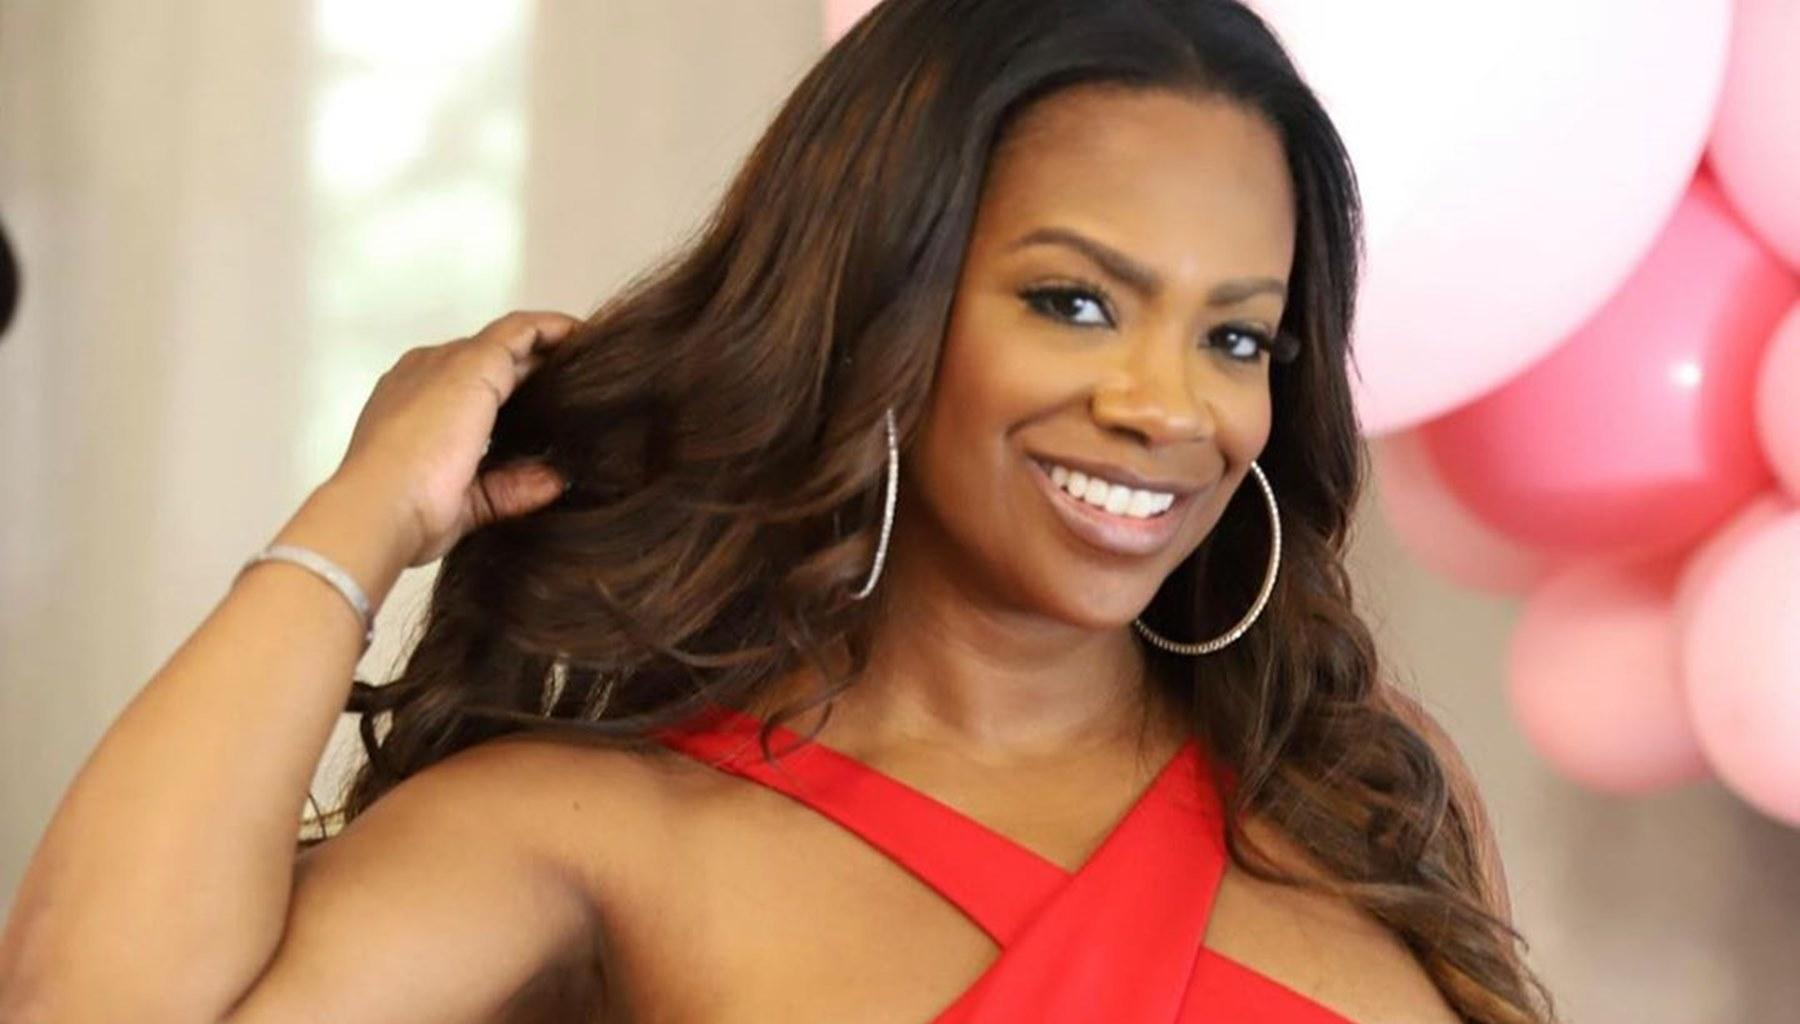 Kandi Burruss Teams Up With These Famous Atlanta Ladies Including Toya Johnson To Win The TikTok #DontRushChallenge In This Viral Video